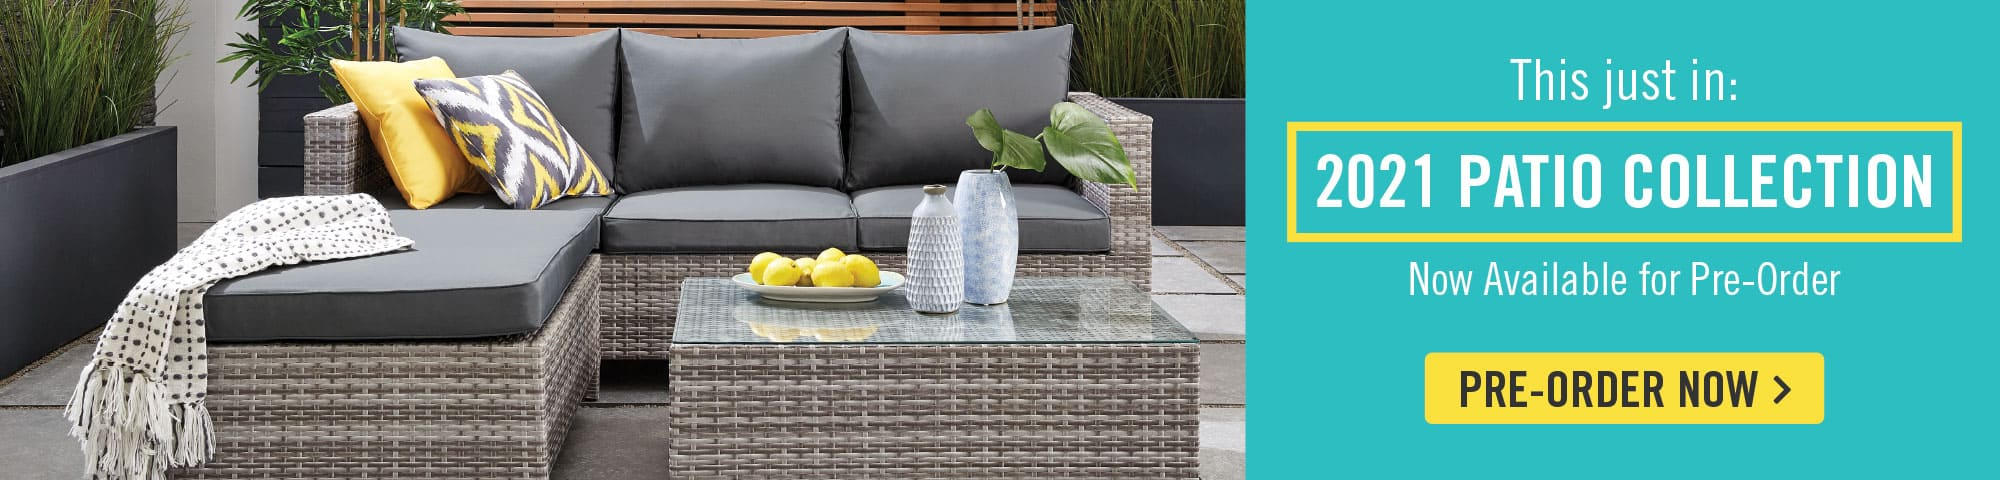 patio 2021 collection available for pre-order now